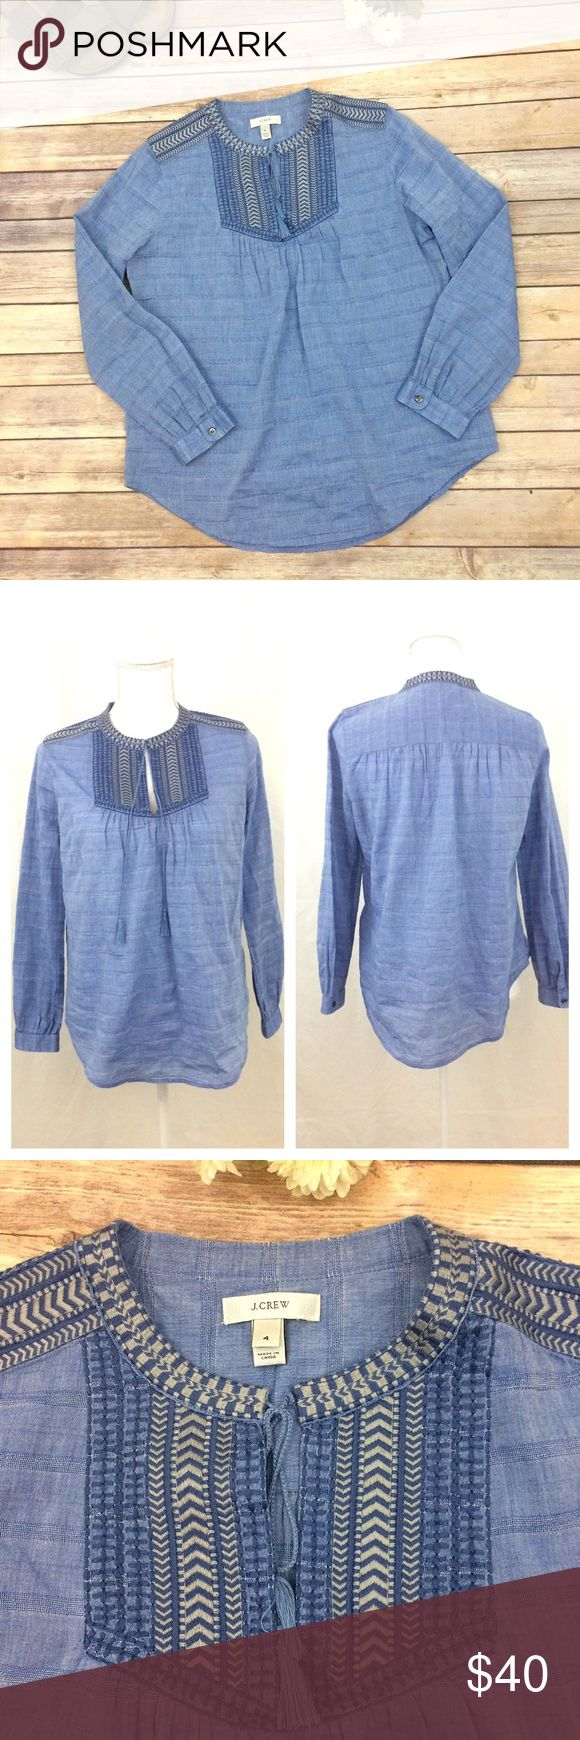 J CREW Blue Smock Style Top Size 4 J Crew light blue cotton smock style Top with embroidered yoke and ties with tassels at the neckline.    99% Cotton and 1% Spandex.  Light blue in excellent condition. Smoke free home. Last picture shows Measurements. Thanks for looking 💐 J. Crew Tops